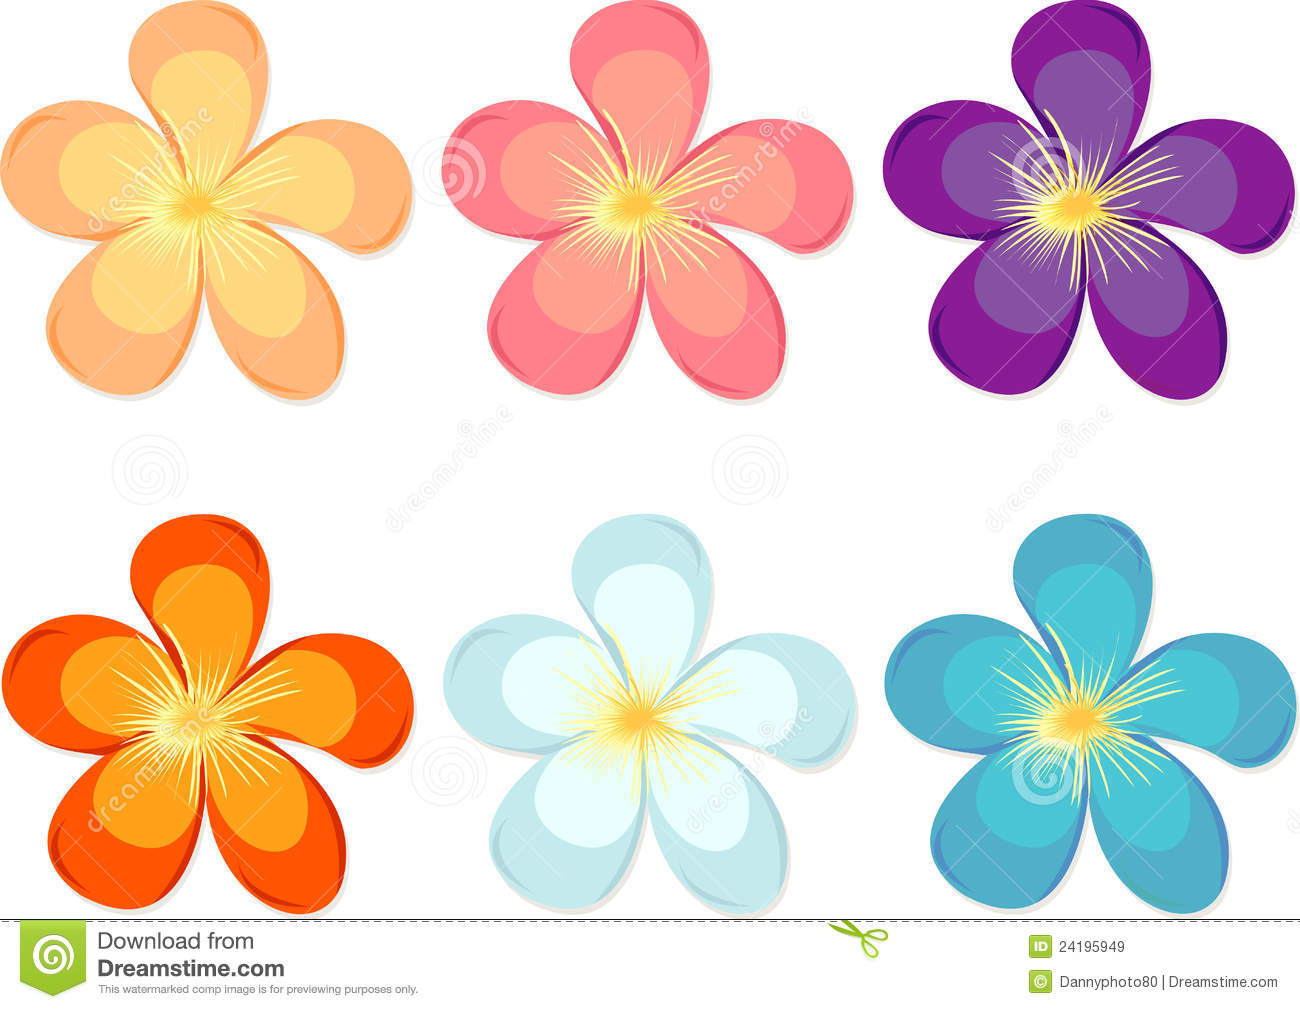 flowers of different colours royalty free stock images 3d shape clip art pyramid 3d shape clipart